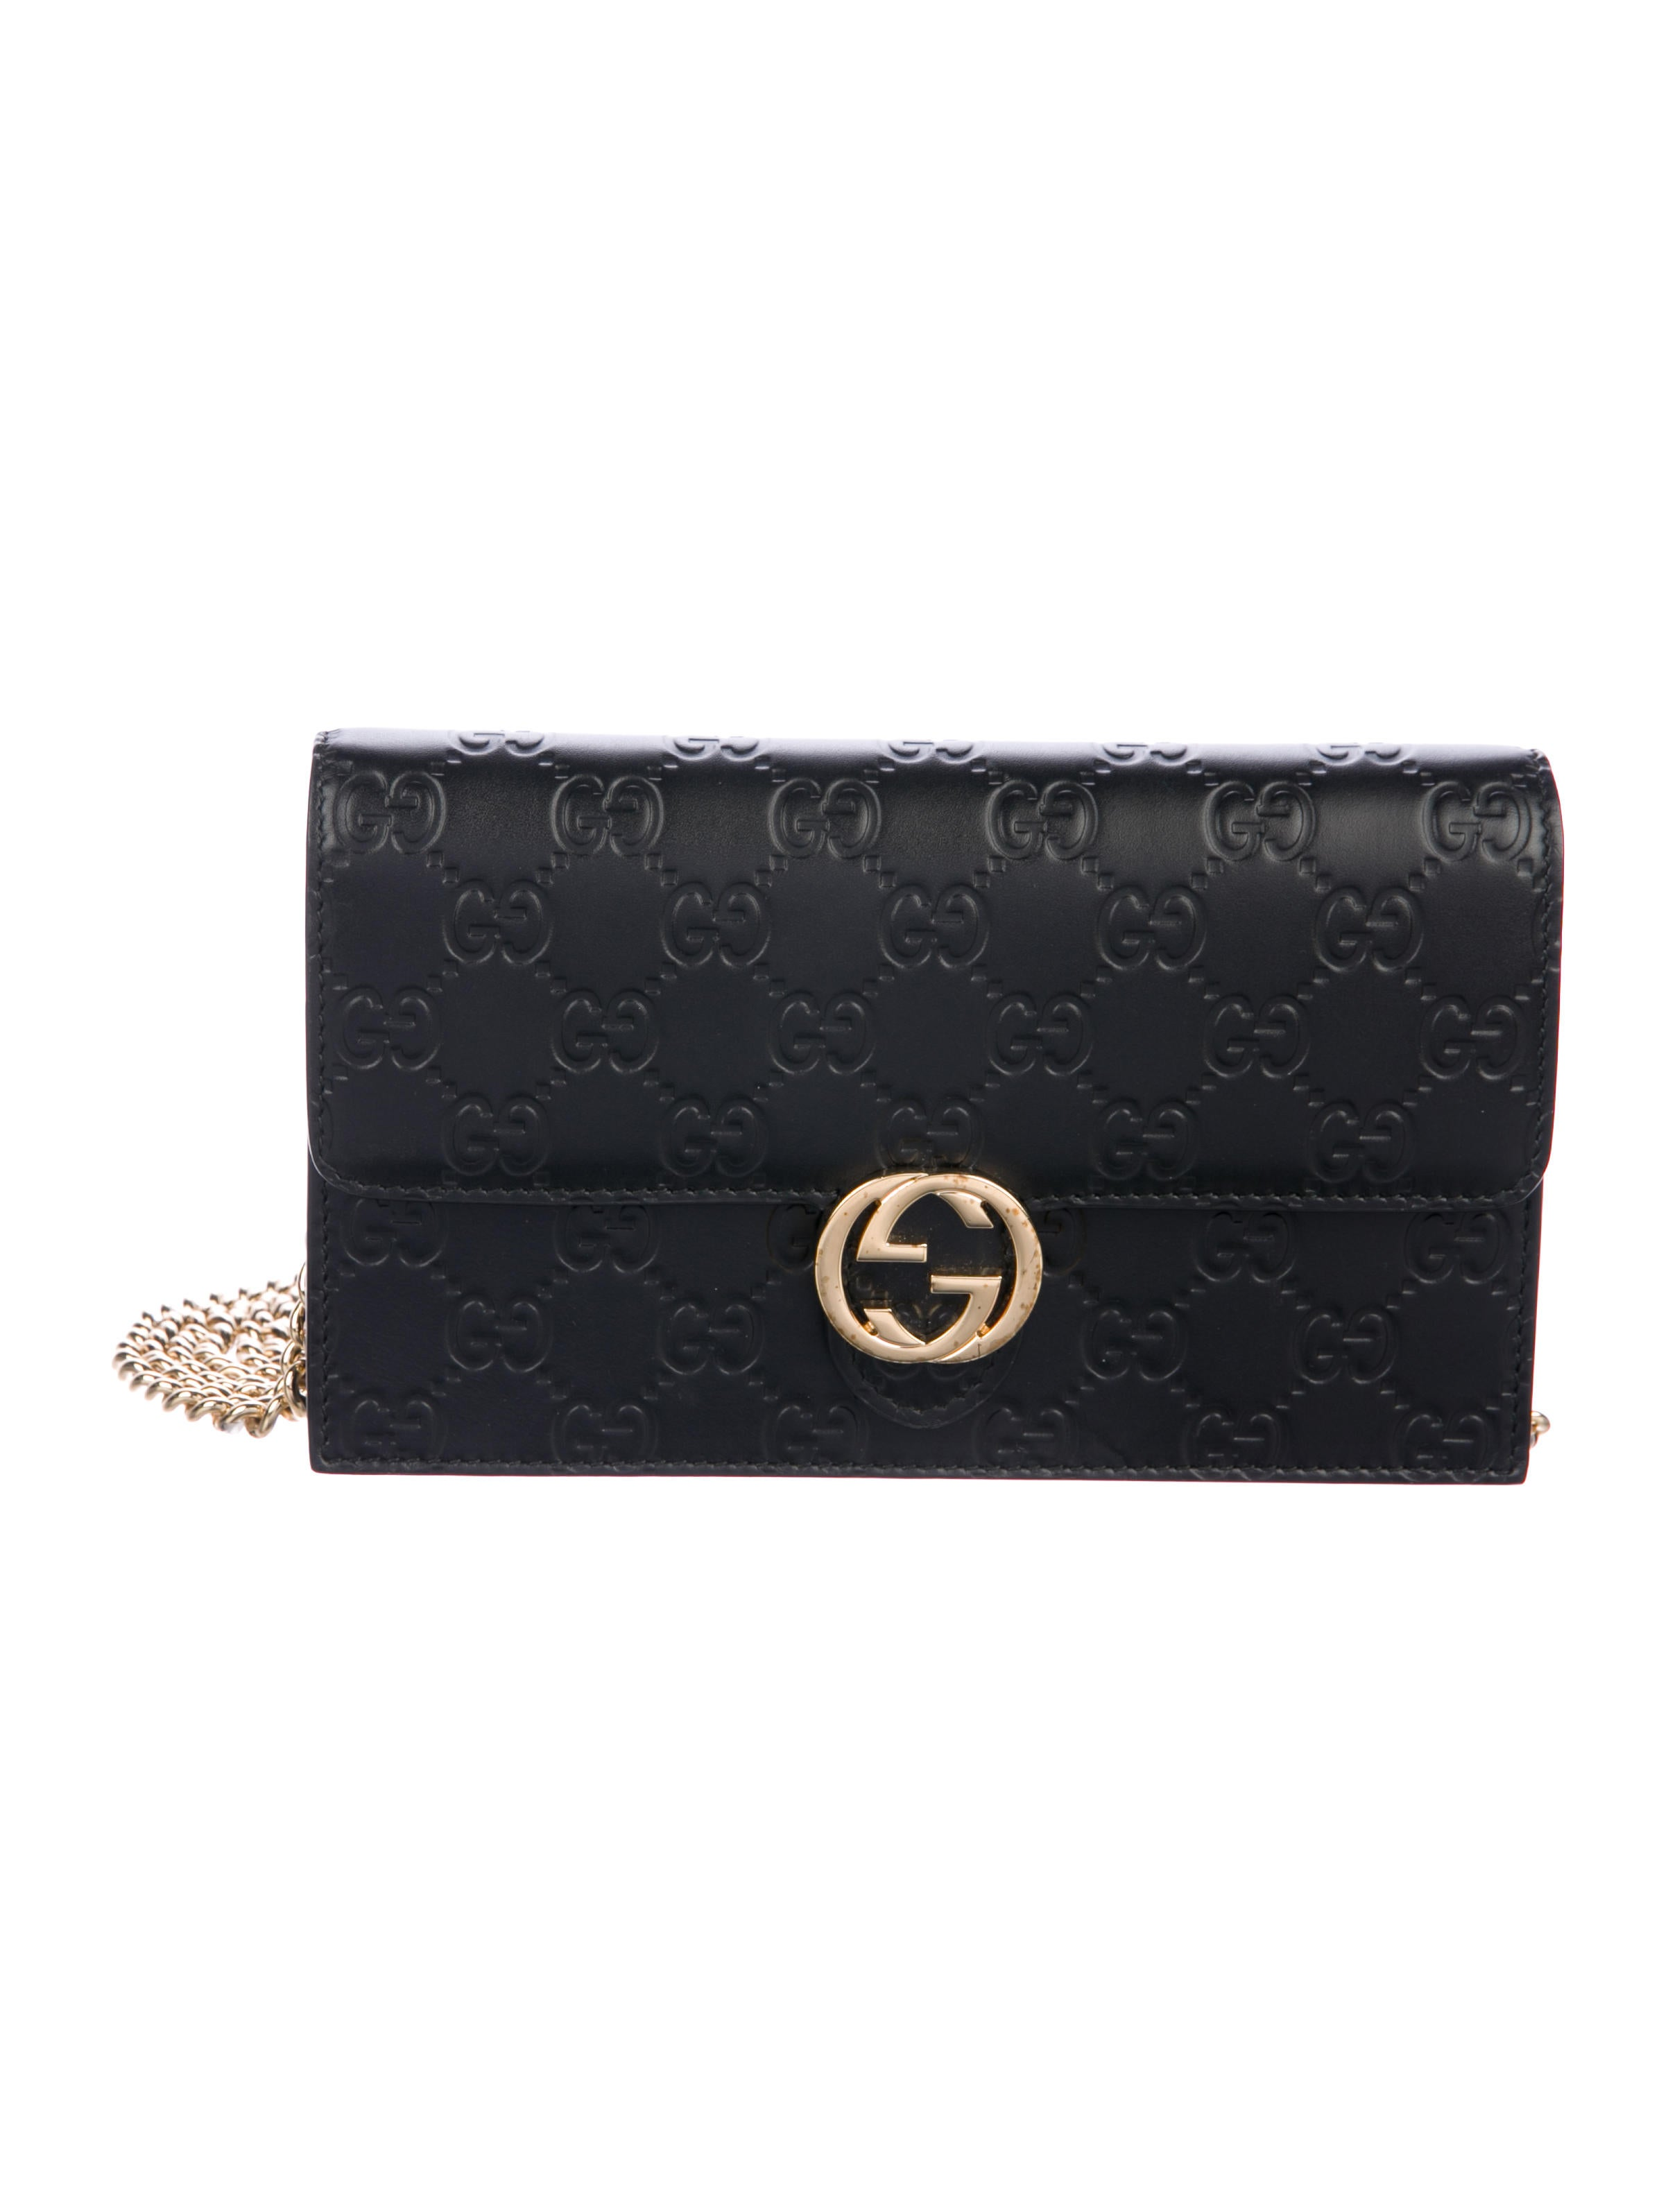 34ebe237102 Gucci Icon Gucci Signature Chain Wallet - Accessories - GUC251427 ...